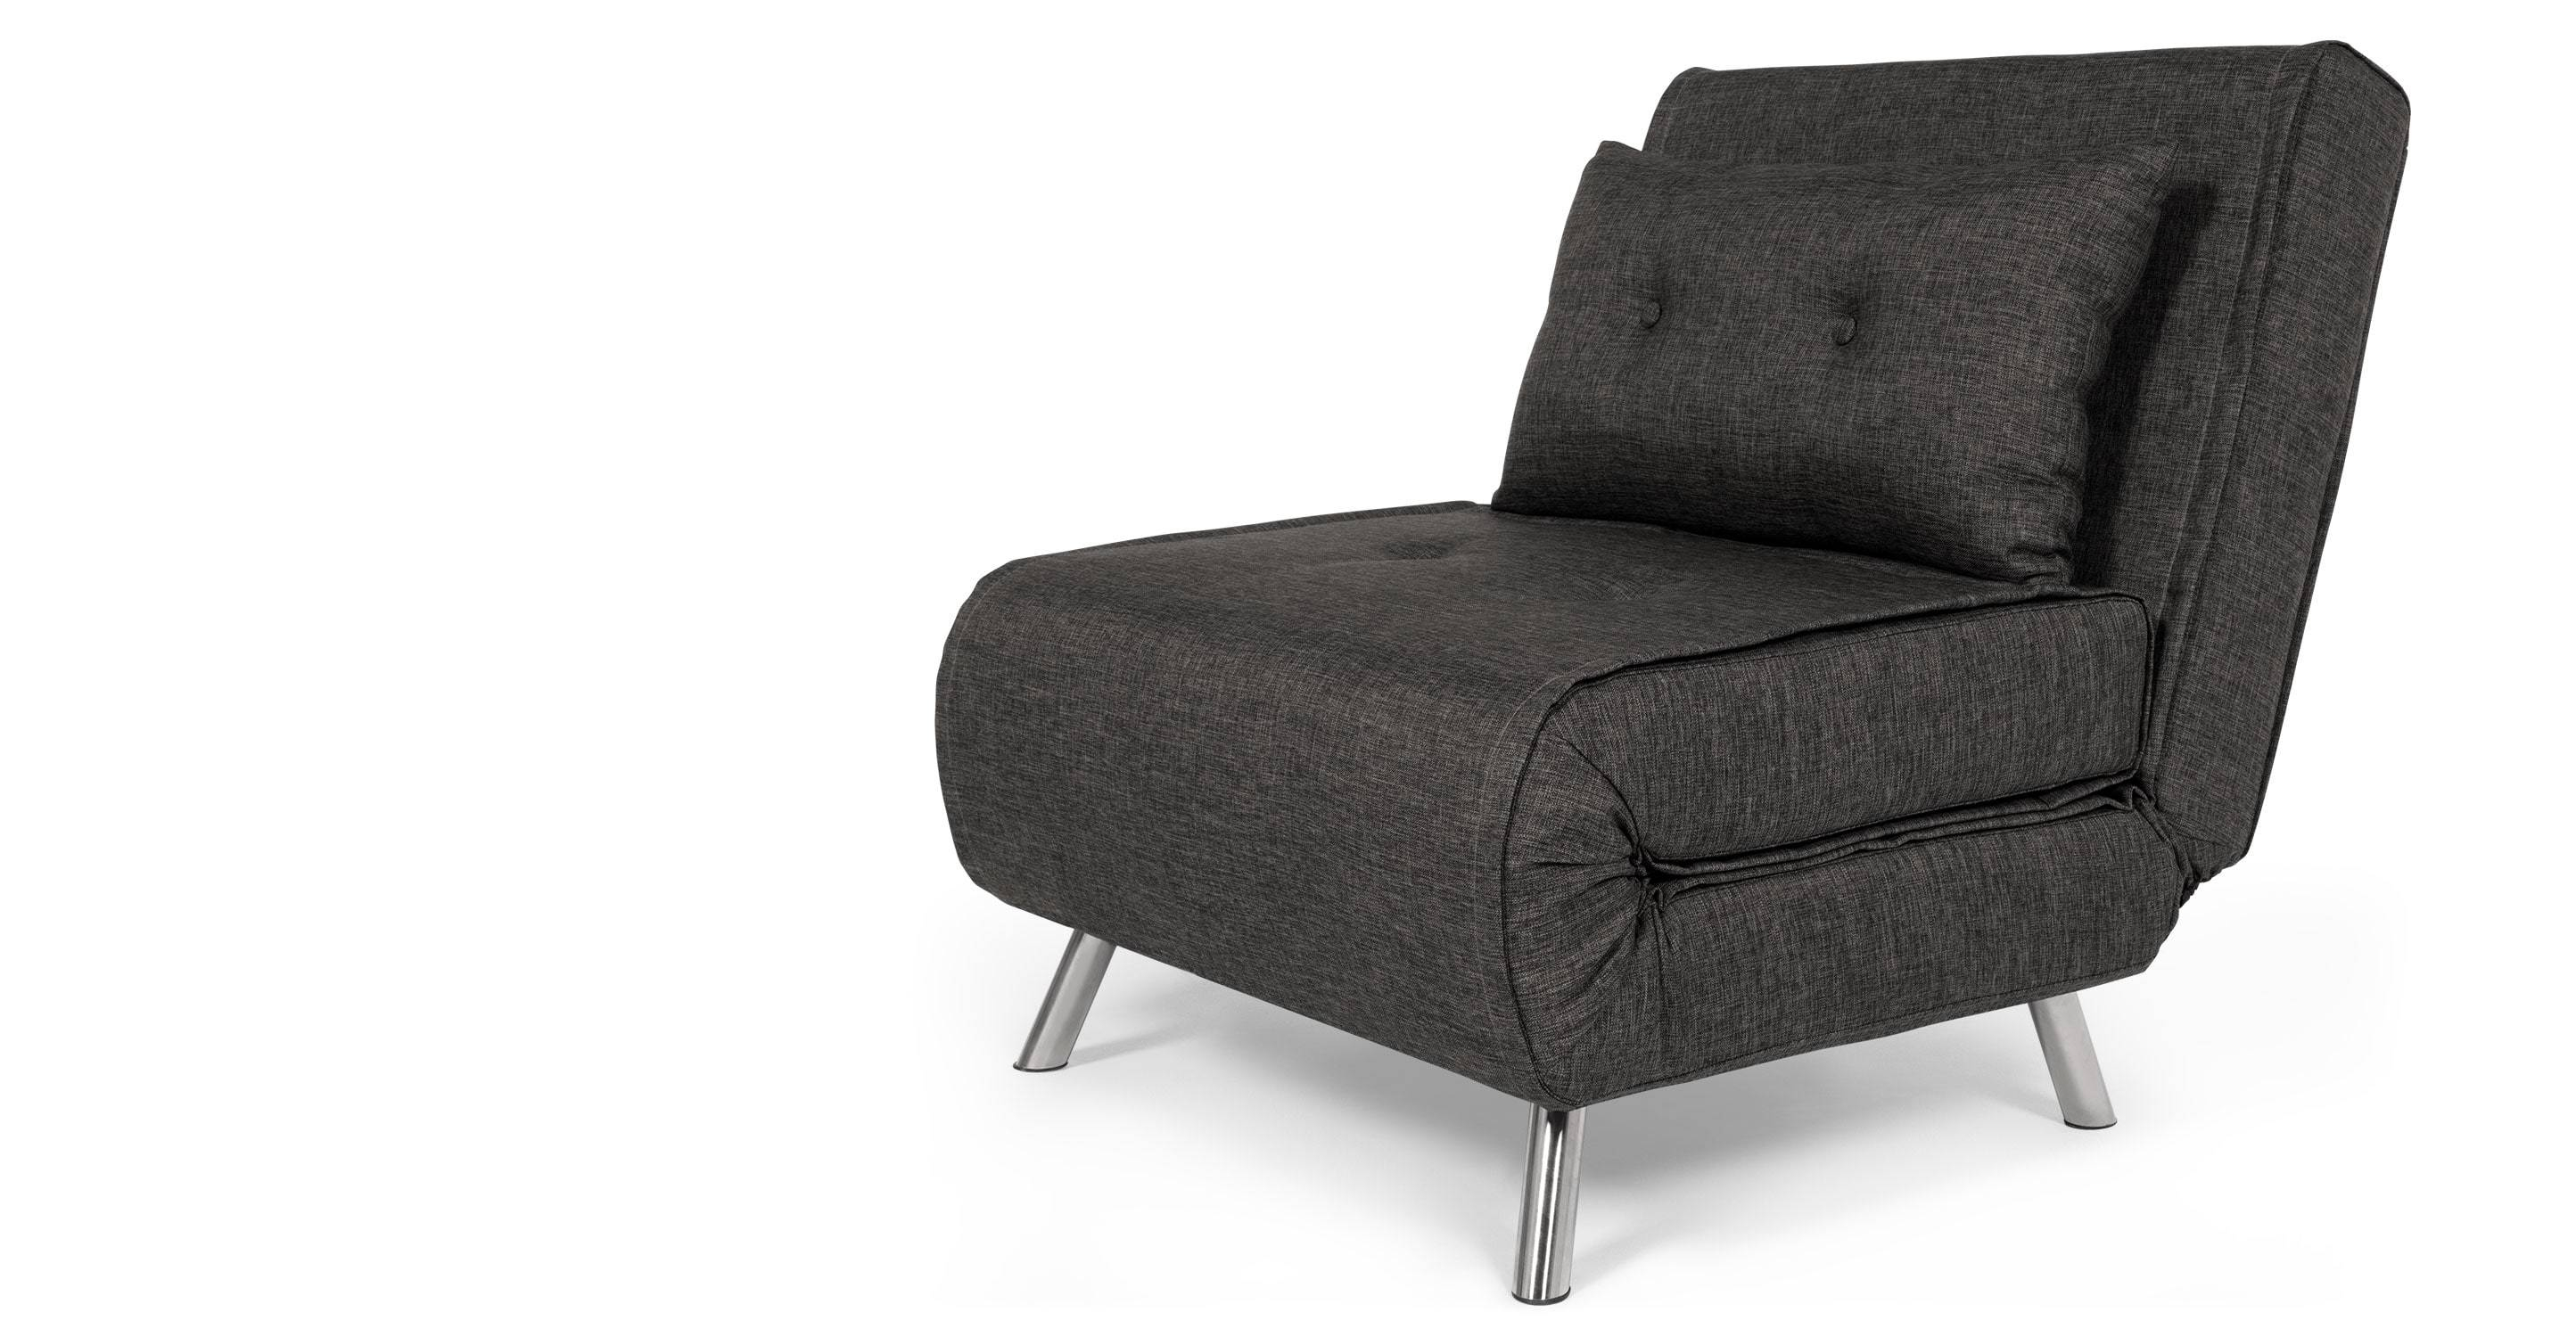 Haru Single Sofa Bed, Cygnet Grey | Made With Regard To Sofa Beds Chairs (View 7 of 15)